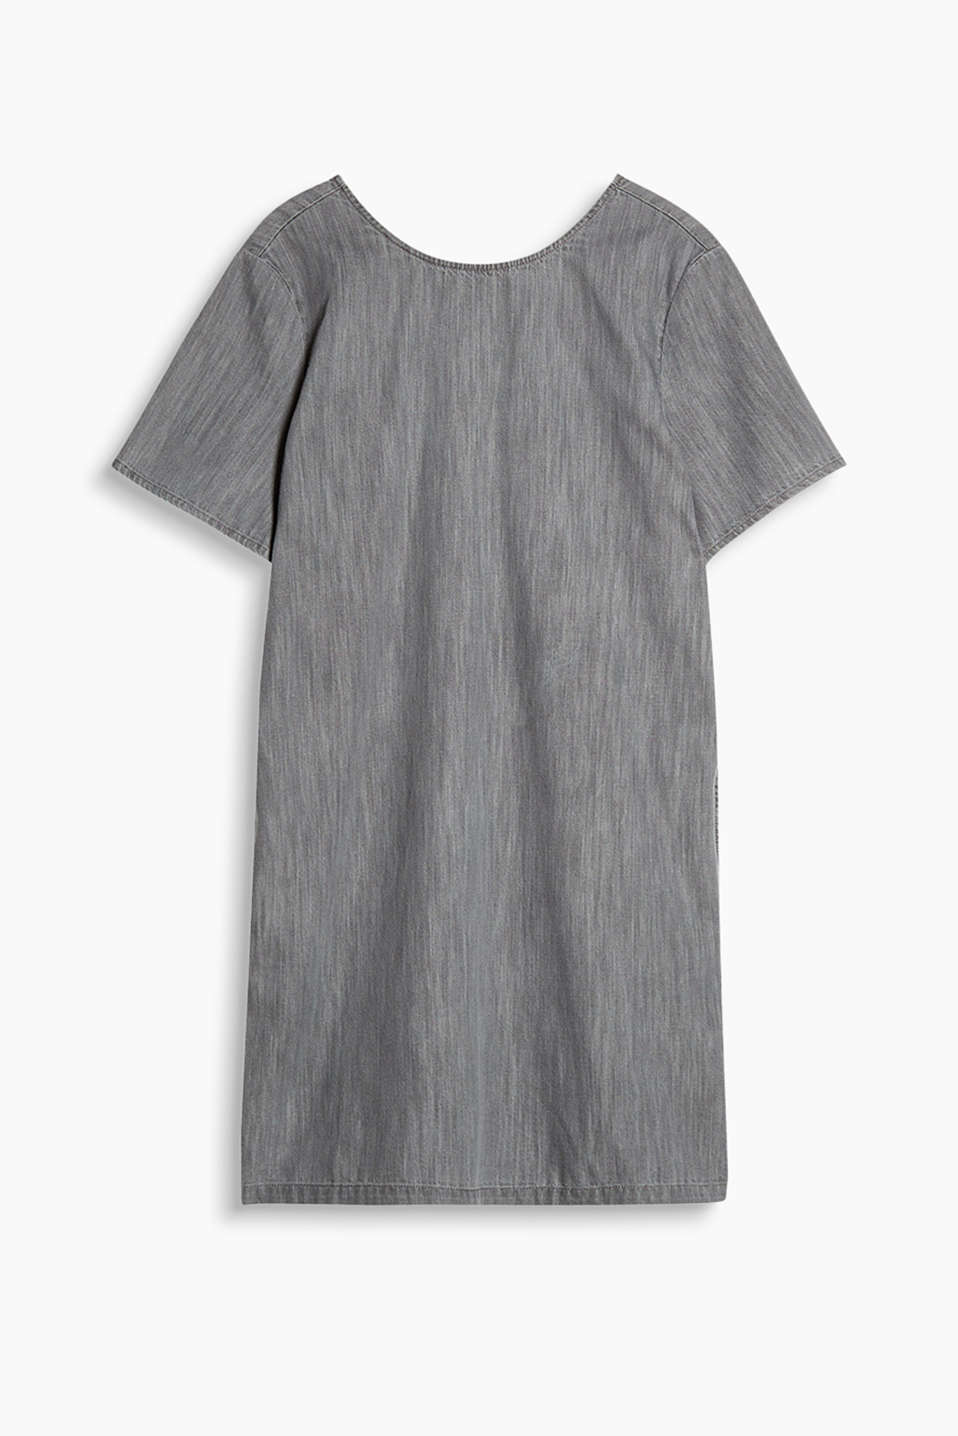 H-line dress in soft melange cotton denim with slit pockets